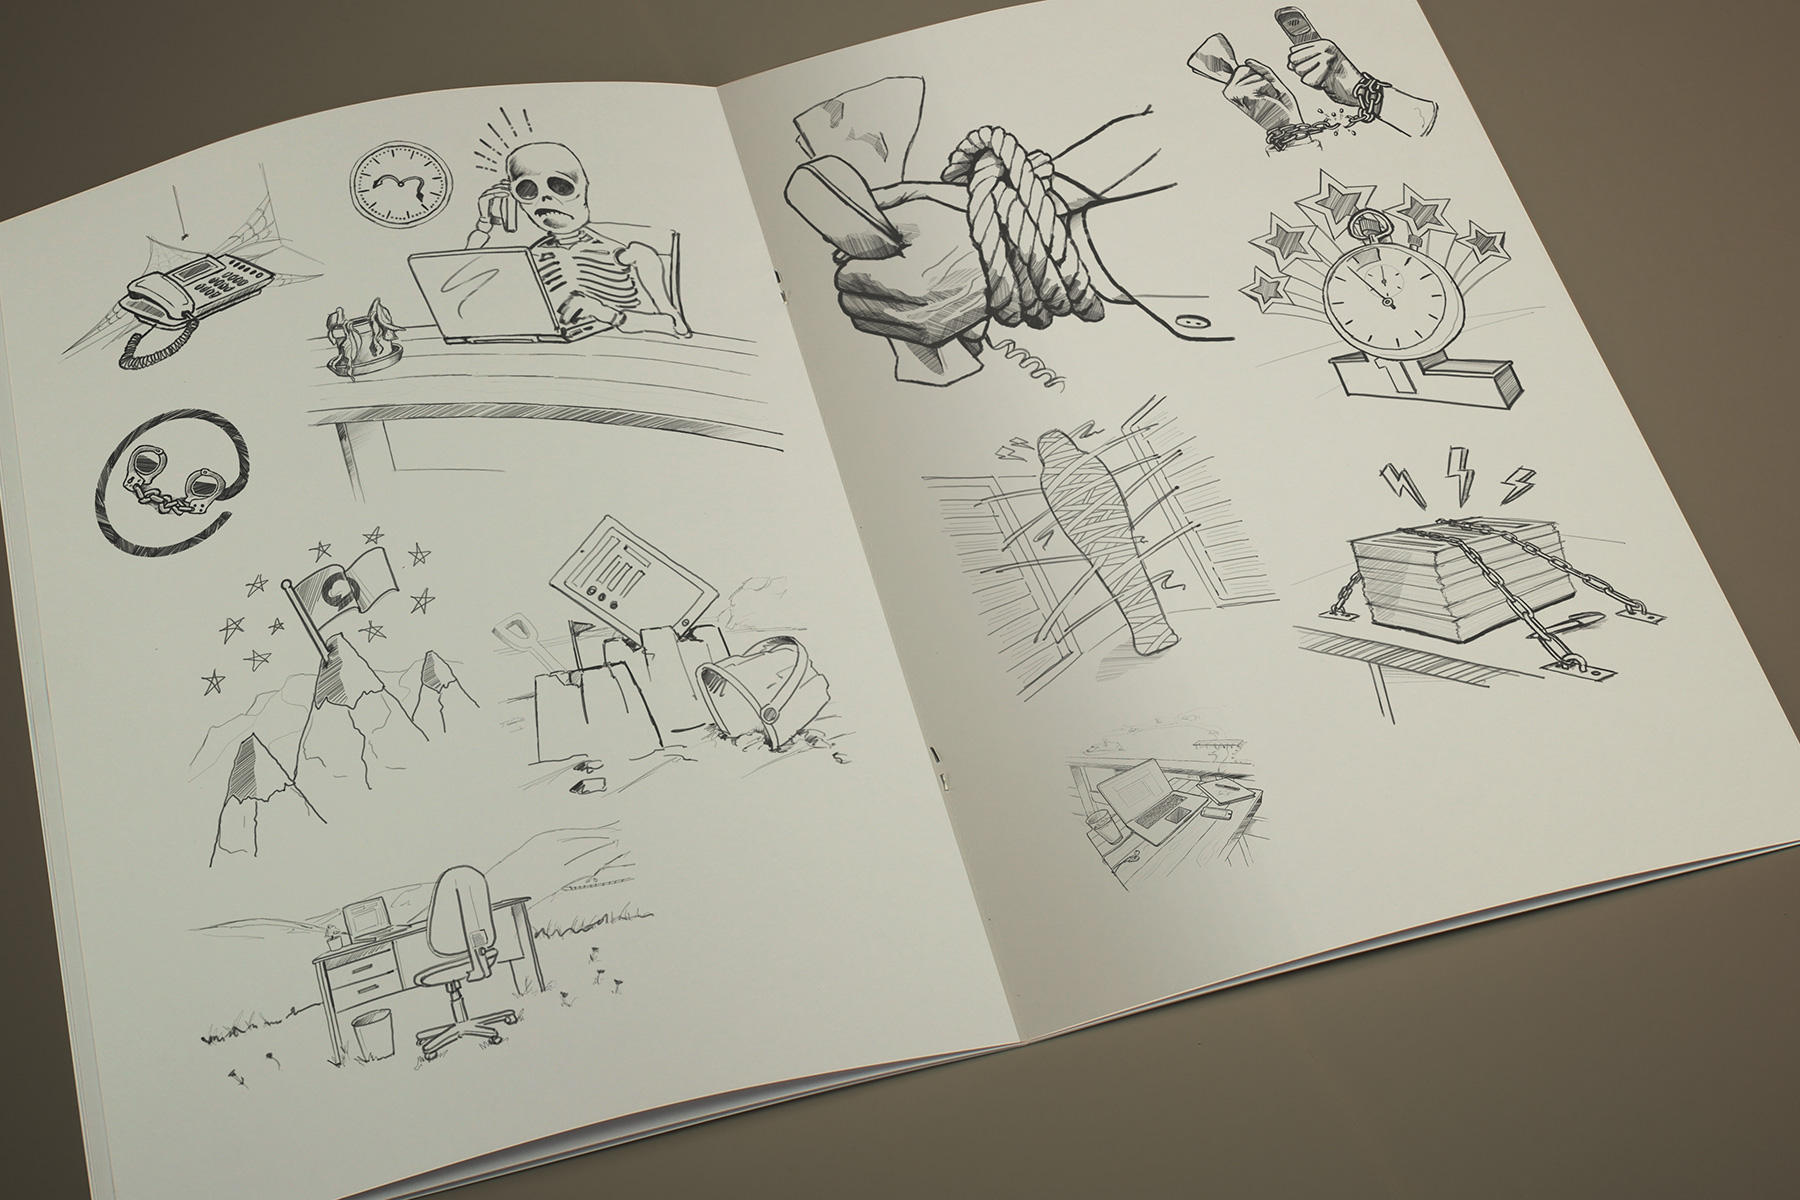 Firedog presented a number of hand drawn conceptual sketches before focusing on the three strongest concepts. We find this creative process incredibly efficient, whilst providing the client the benefit of choice.